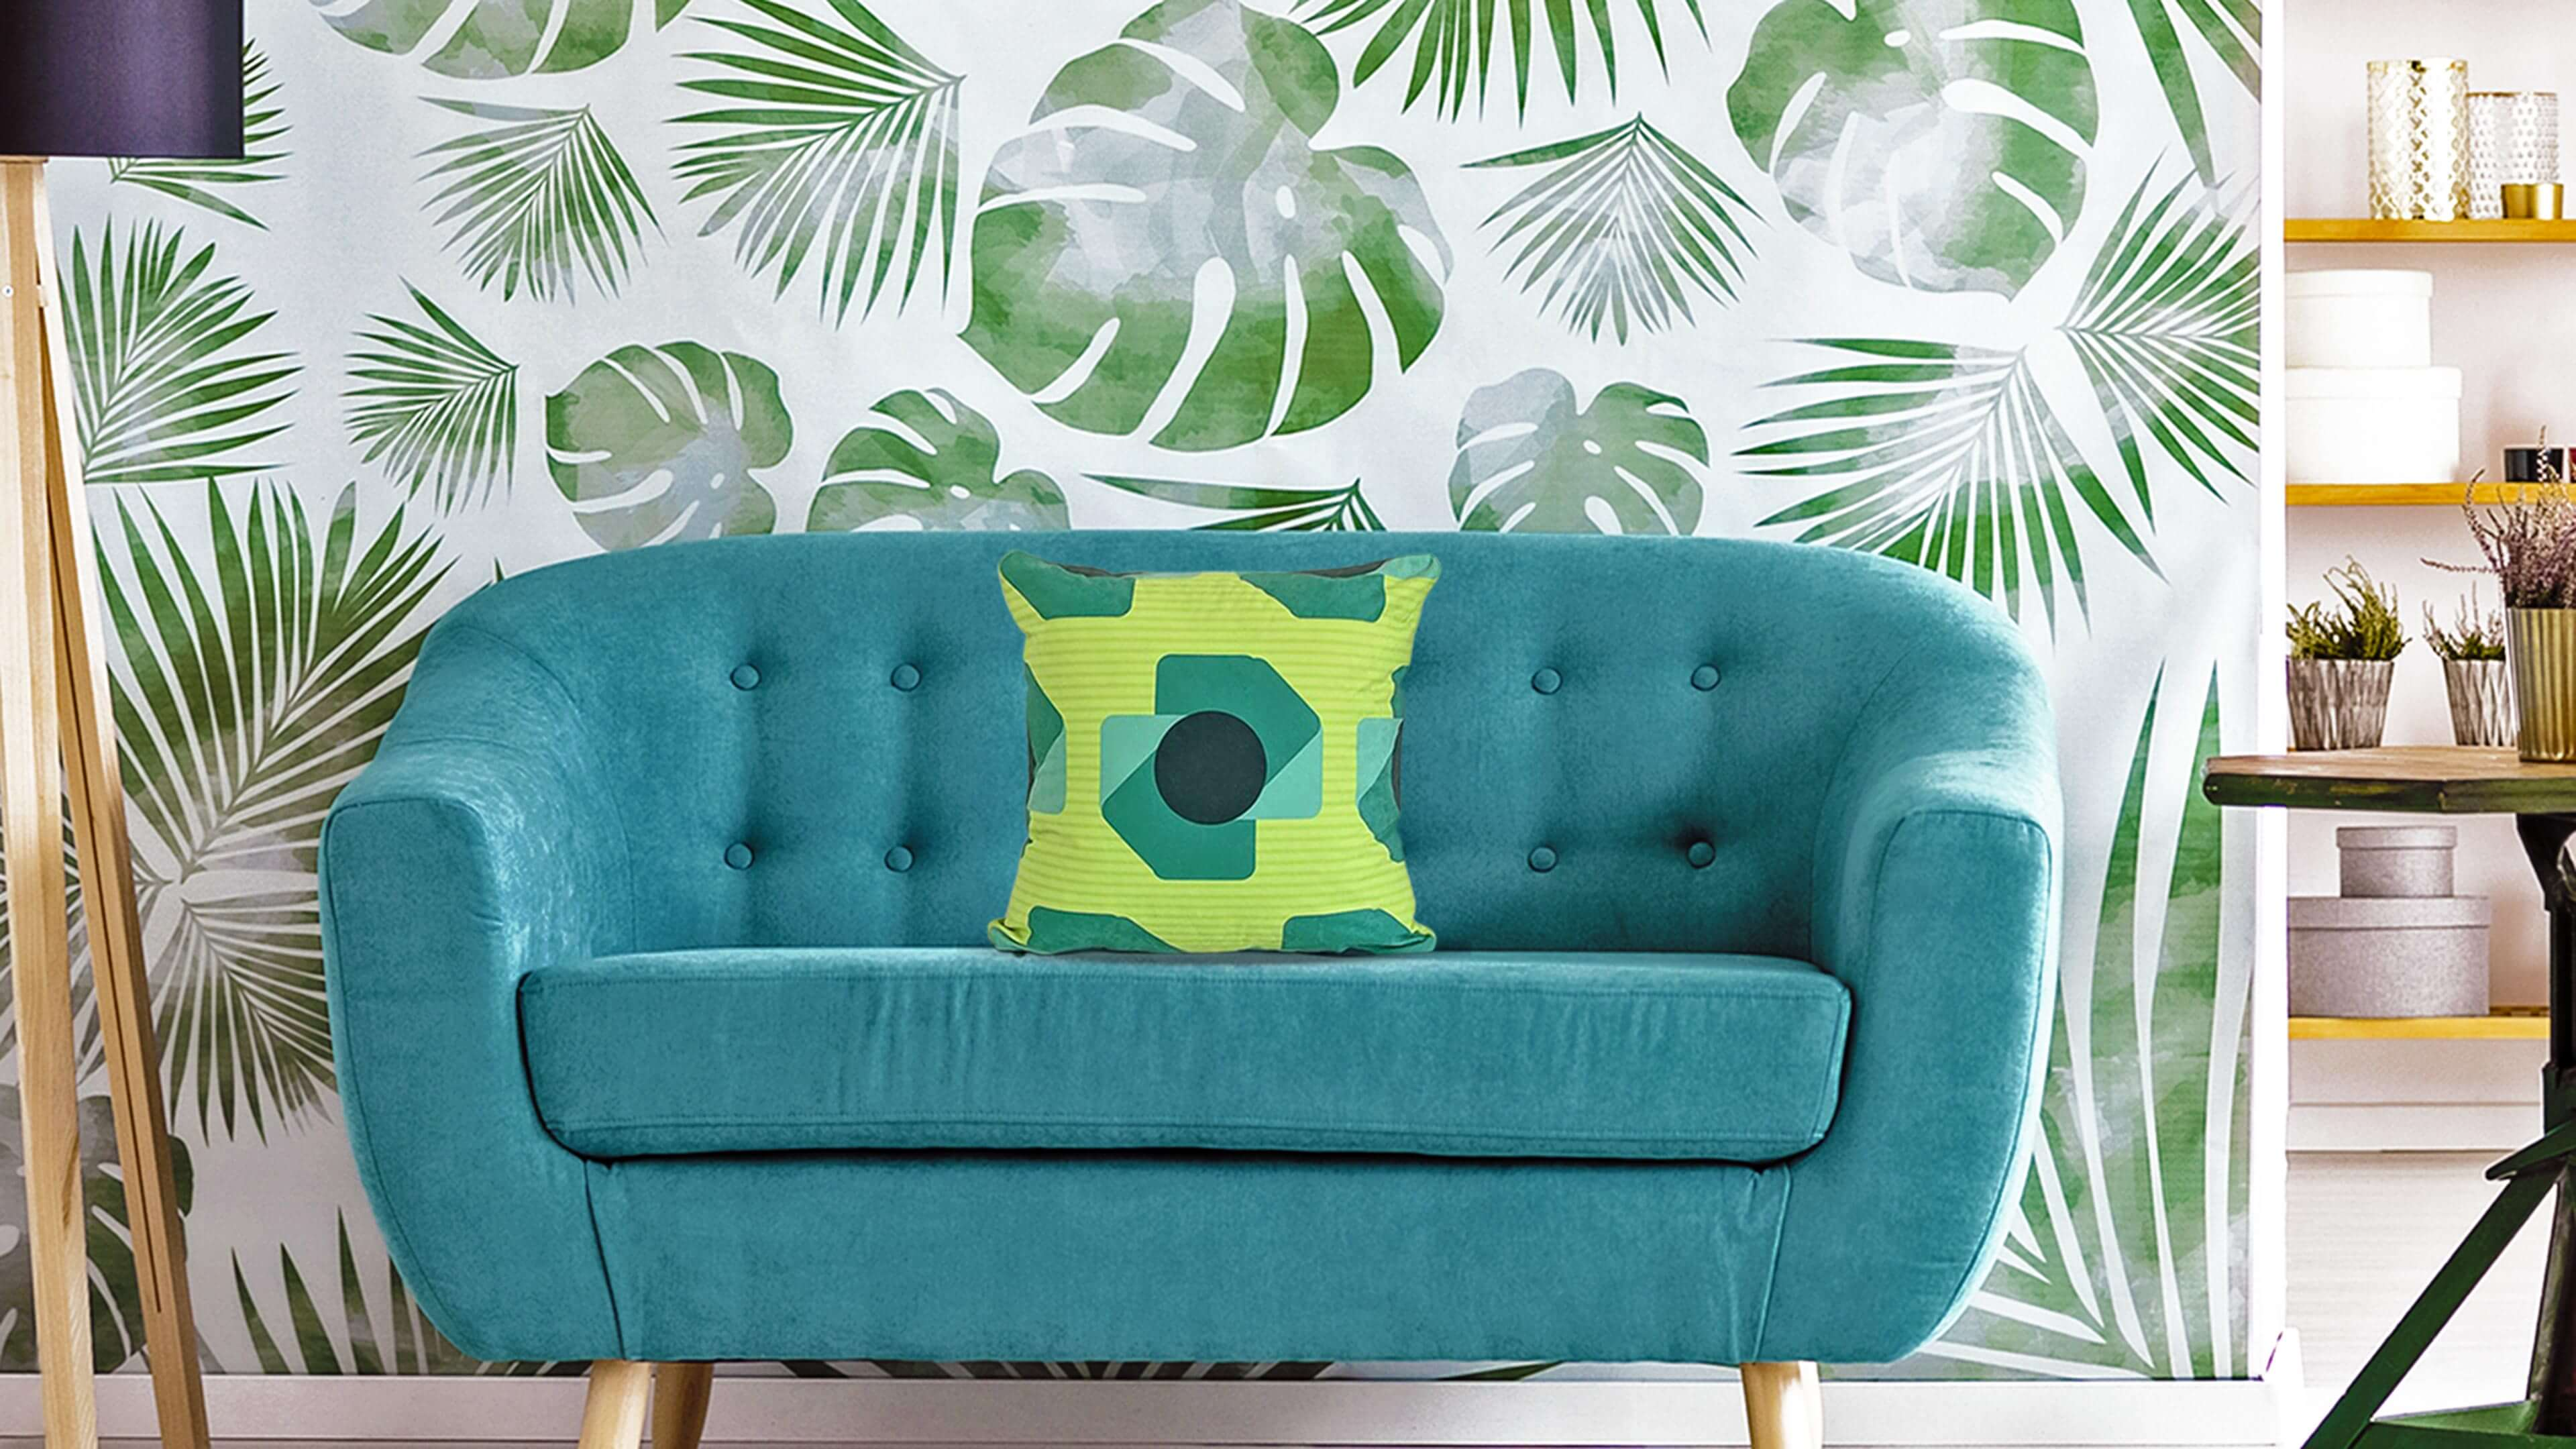 Green faux suede throw pillow on teal living room couch